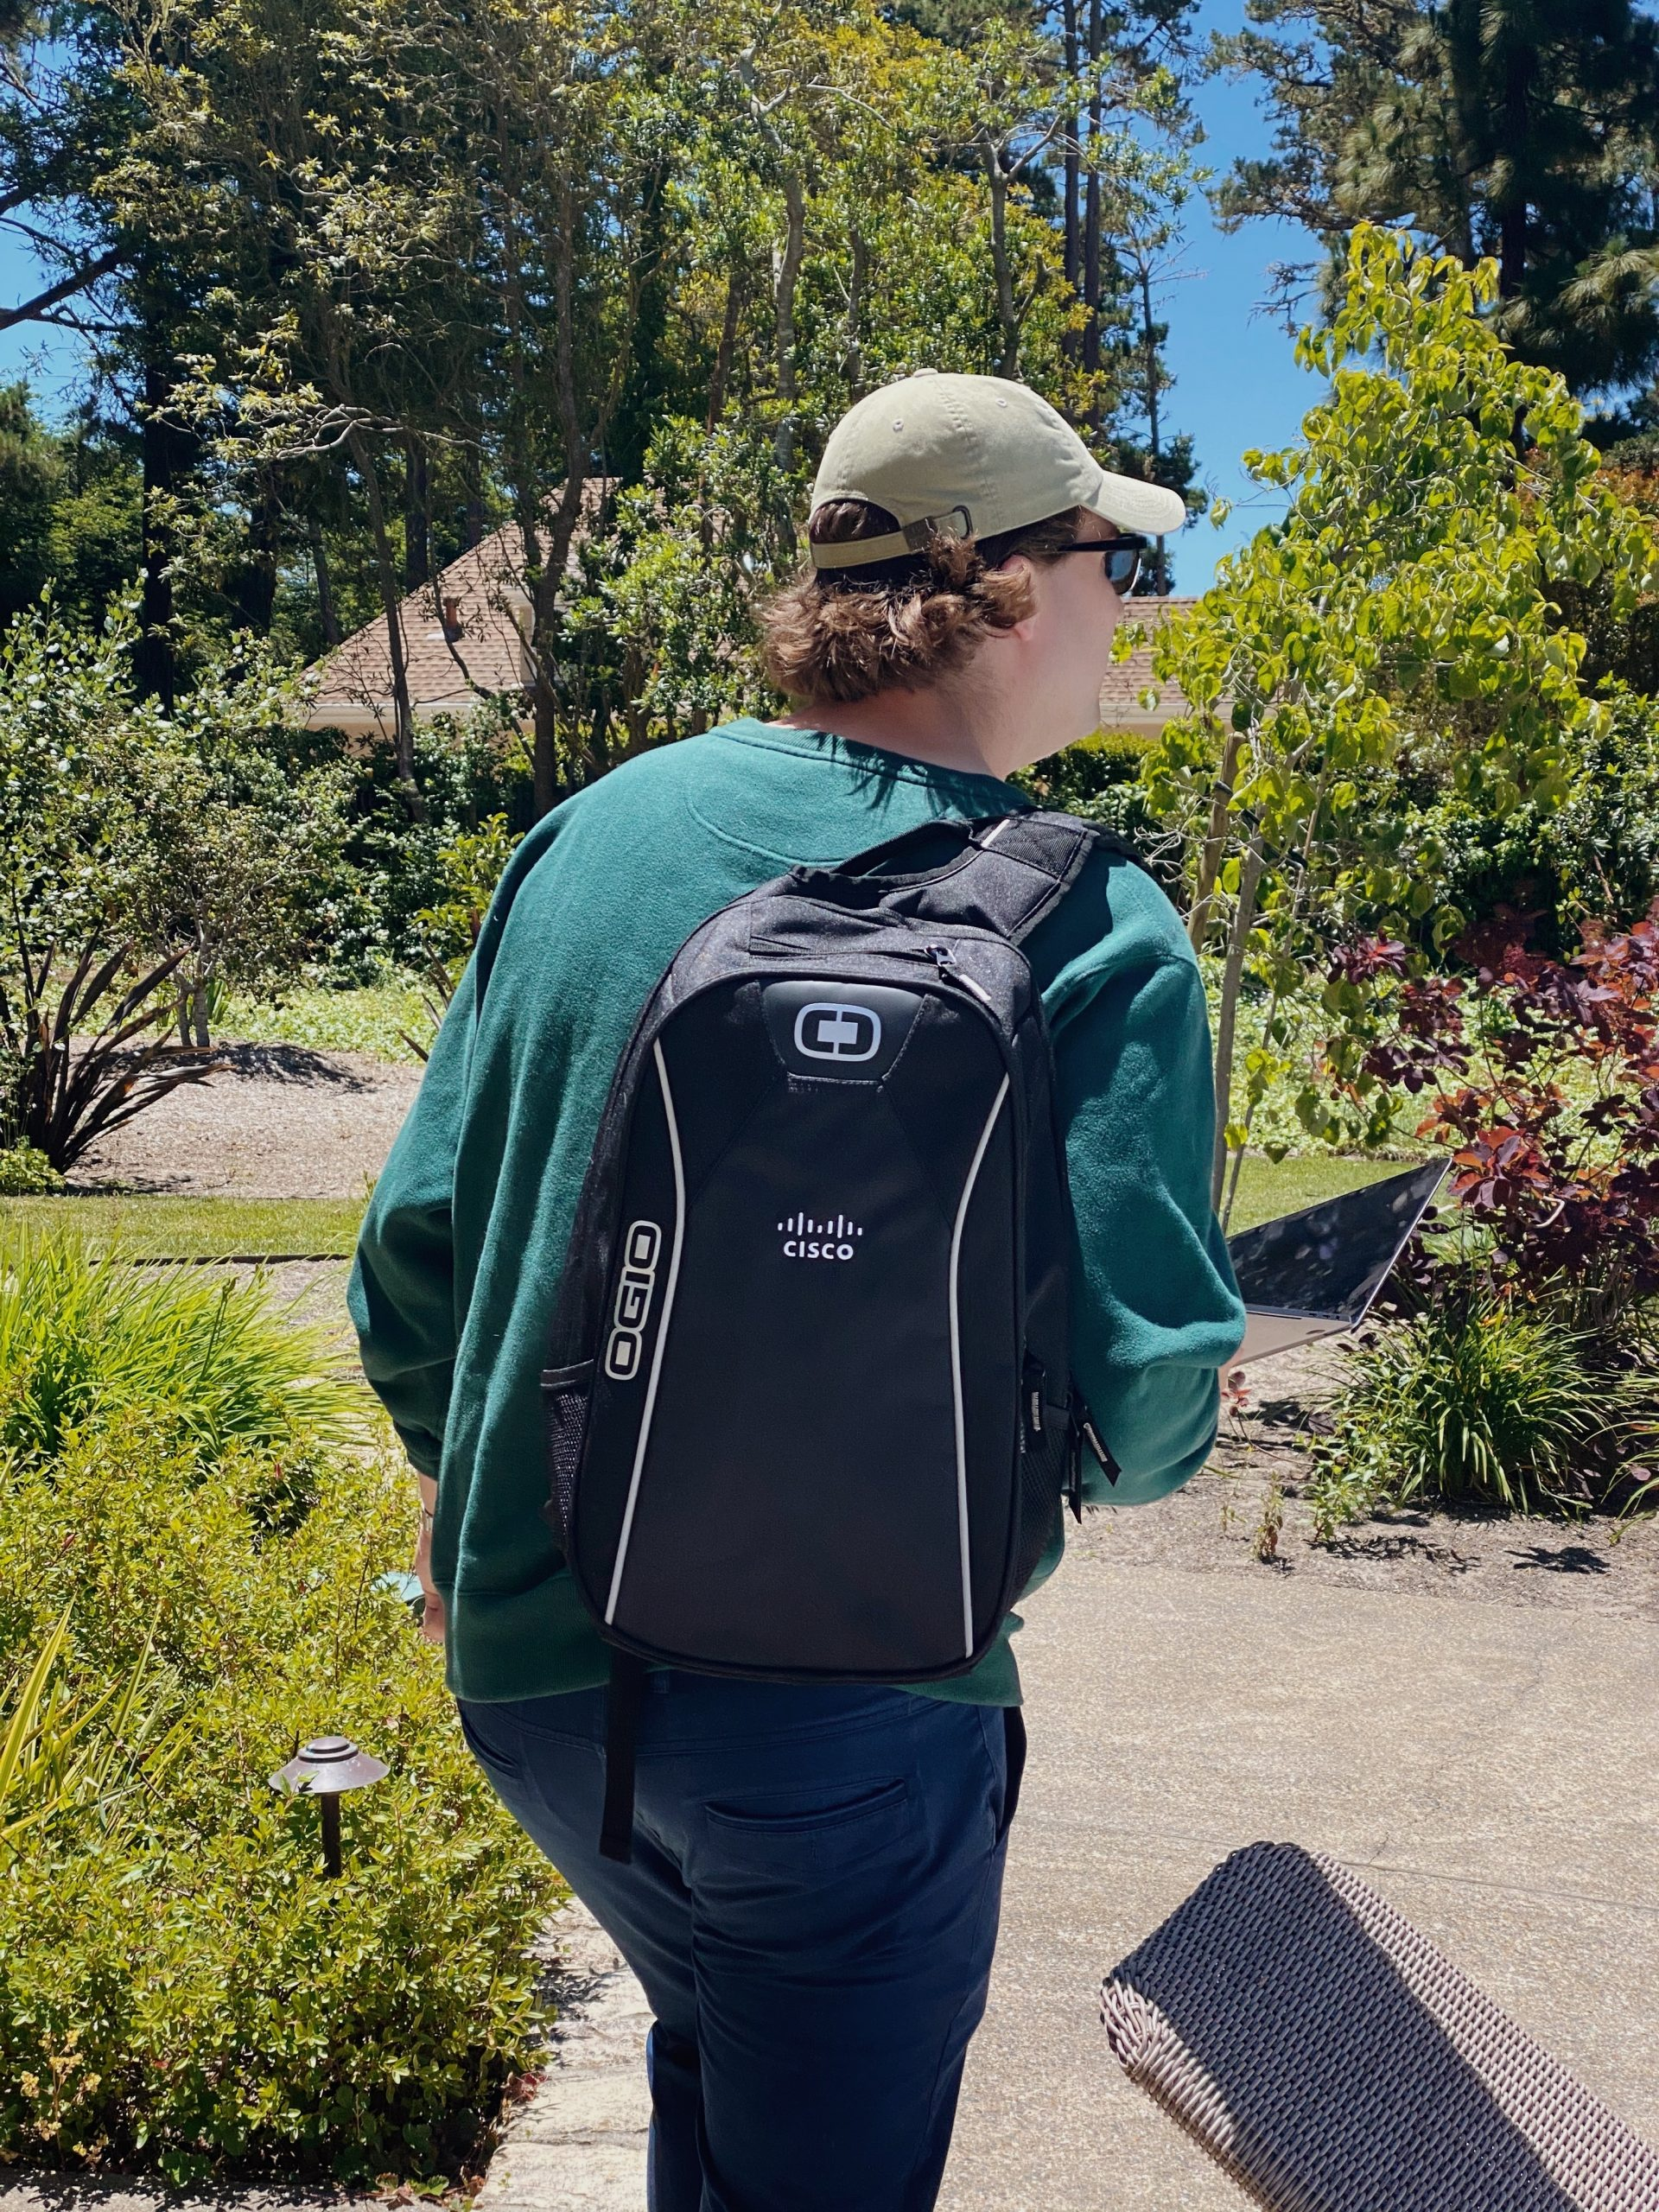 Matthew walks away from the camera with a Cisco branded backpack